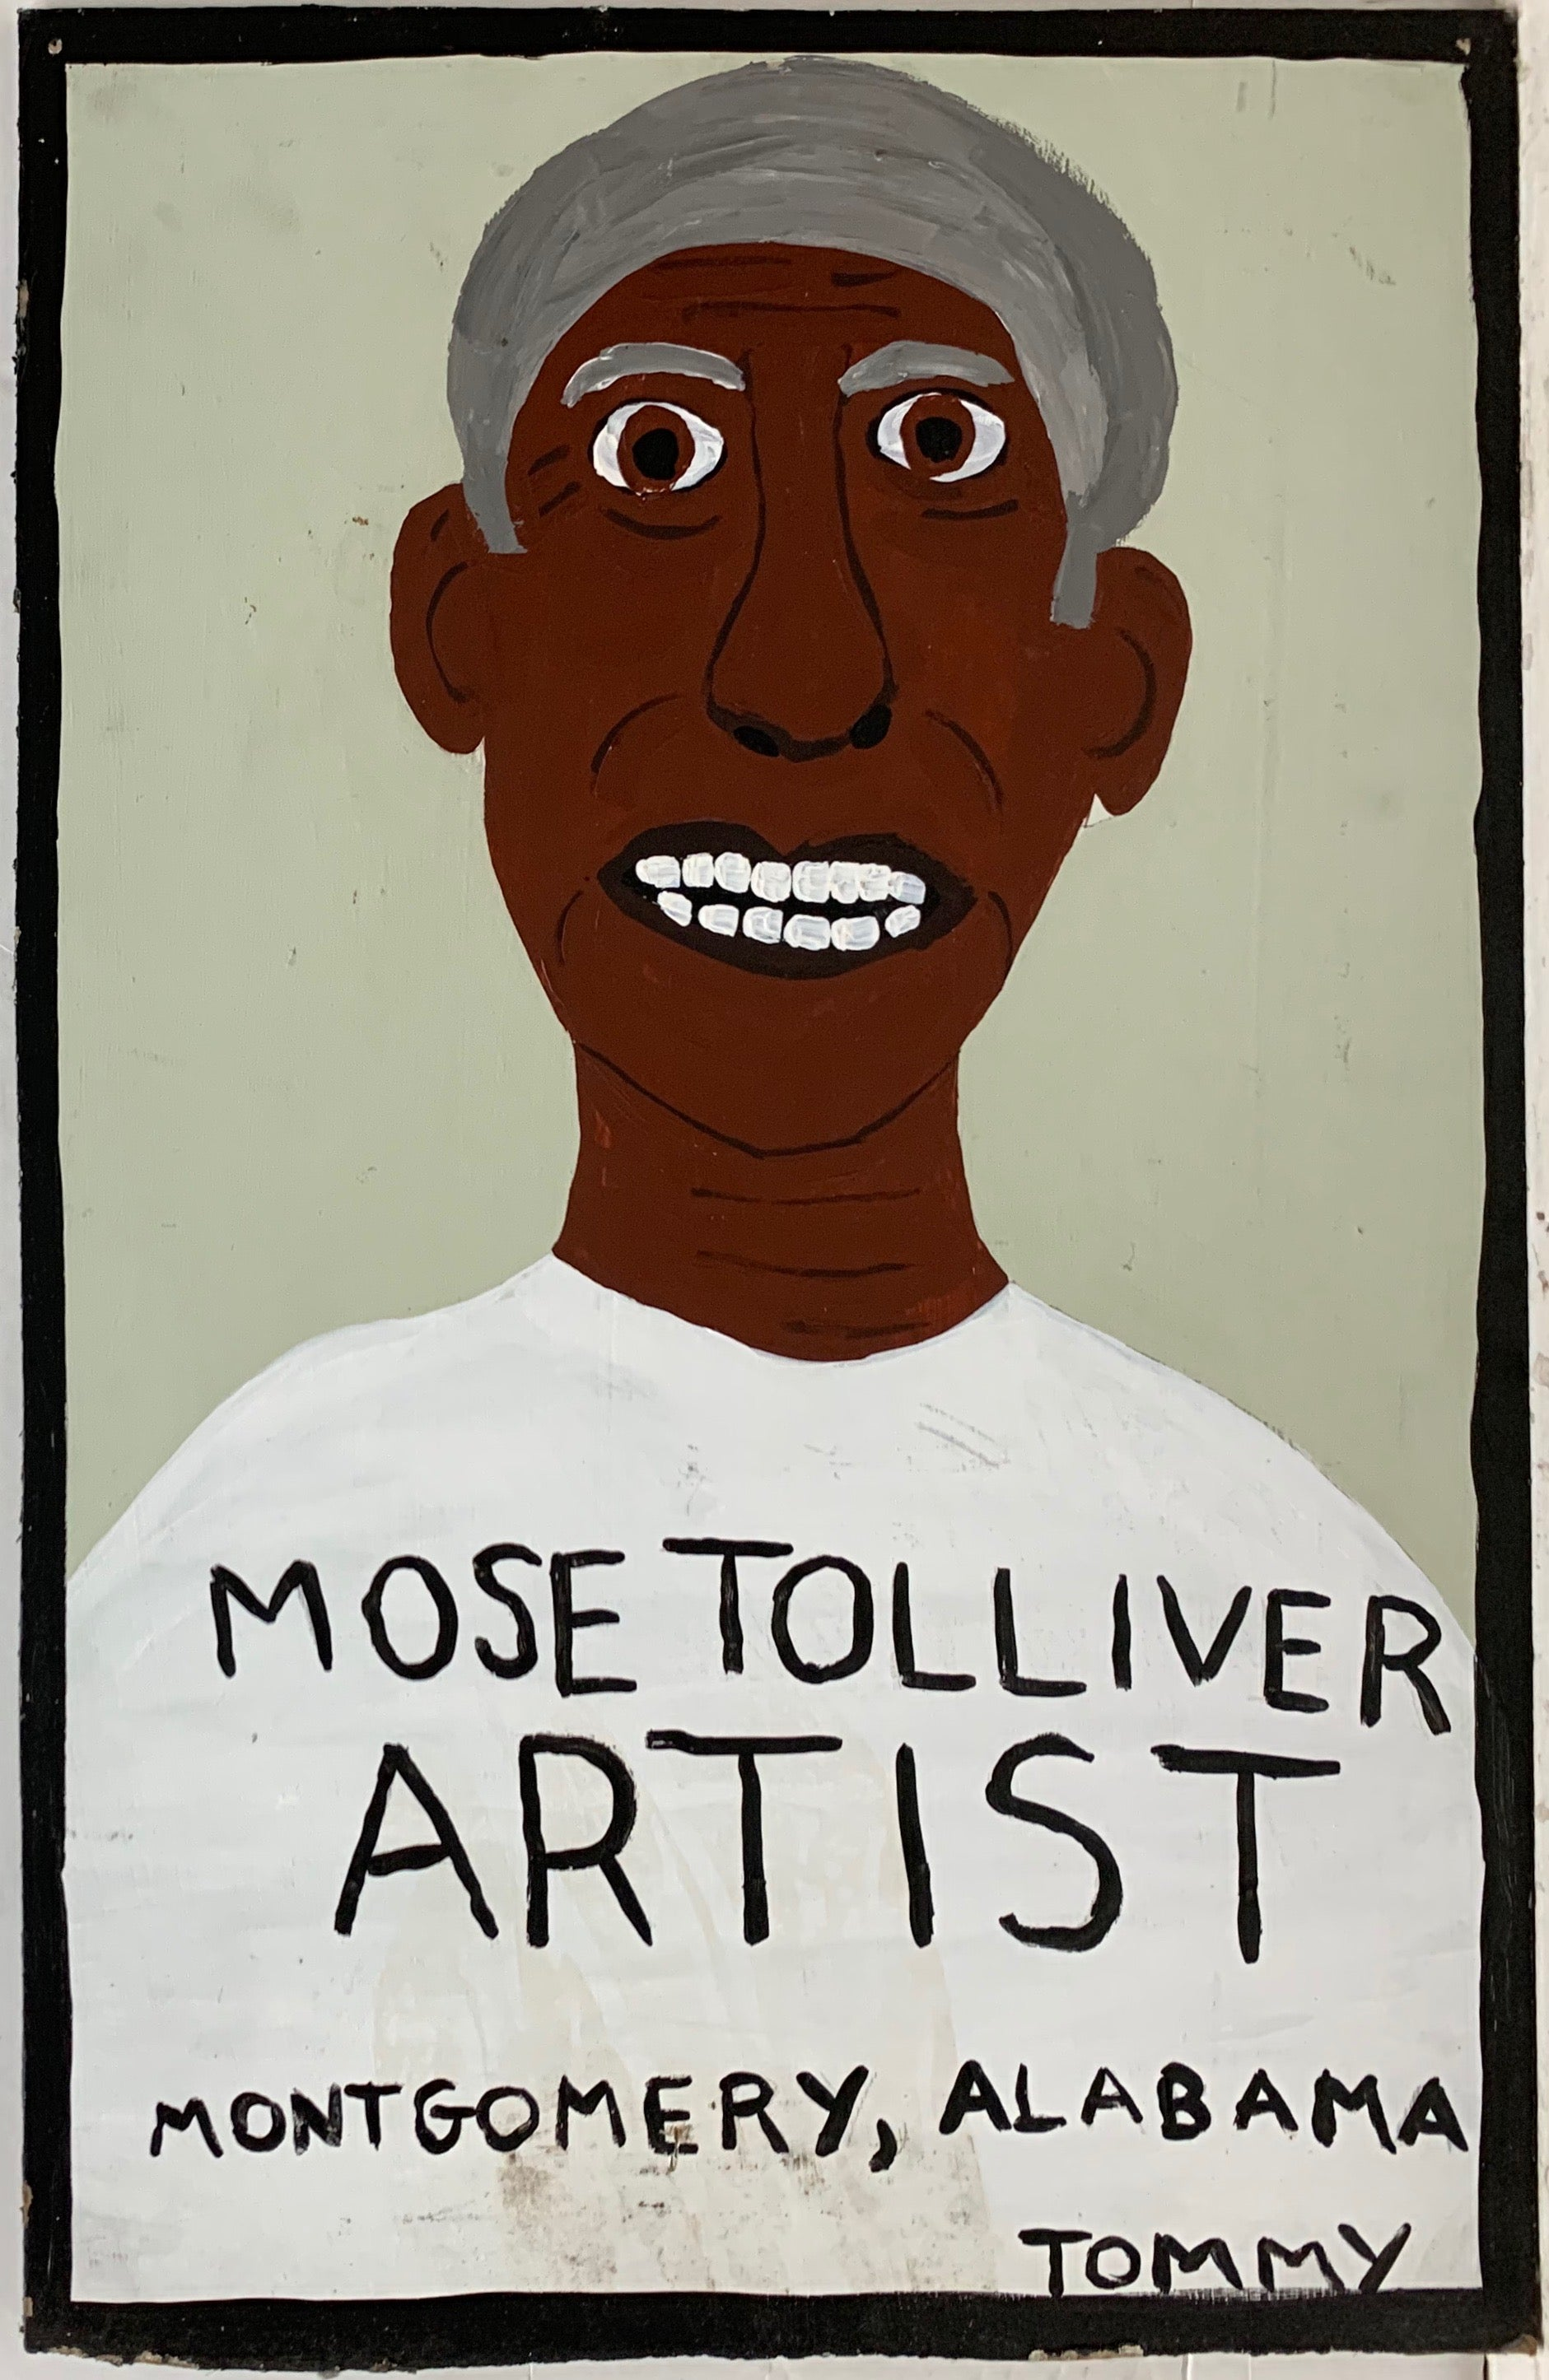 A Tommy Cheng portrait of Mose Tolliver.